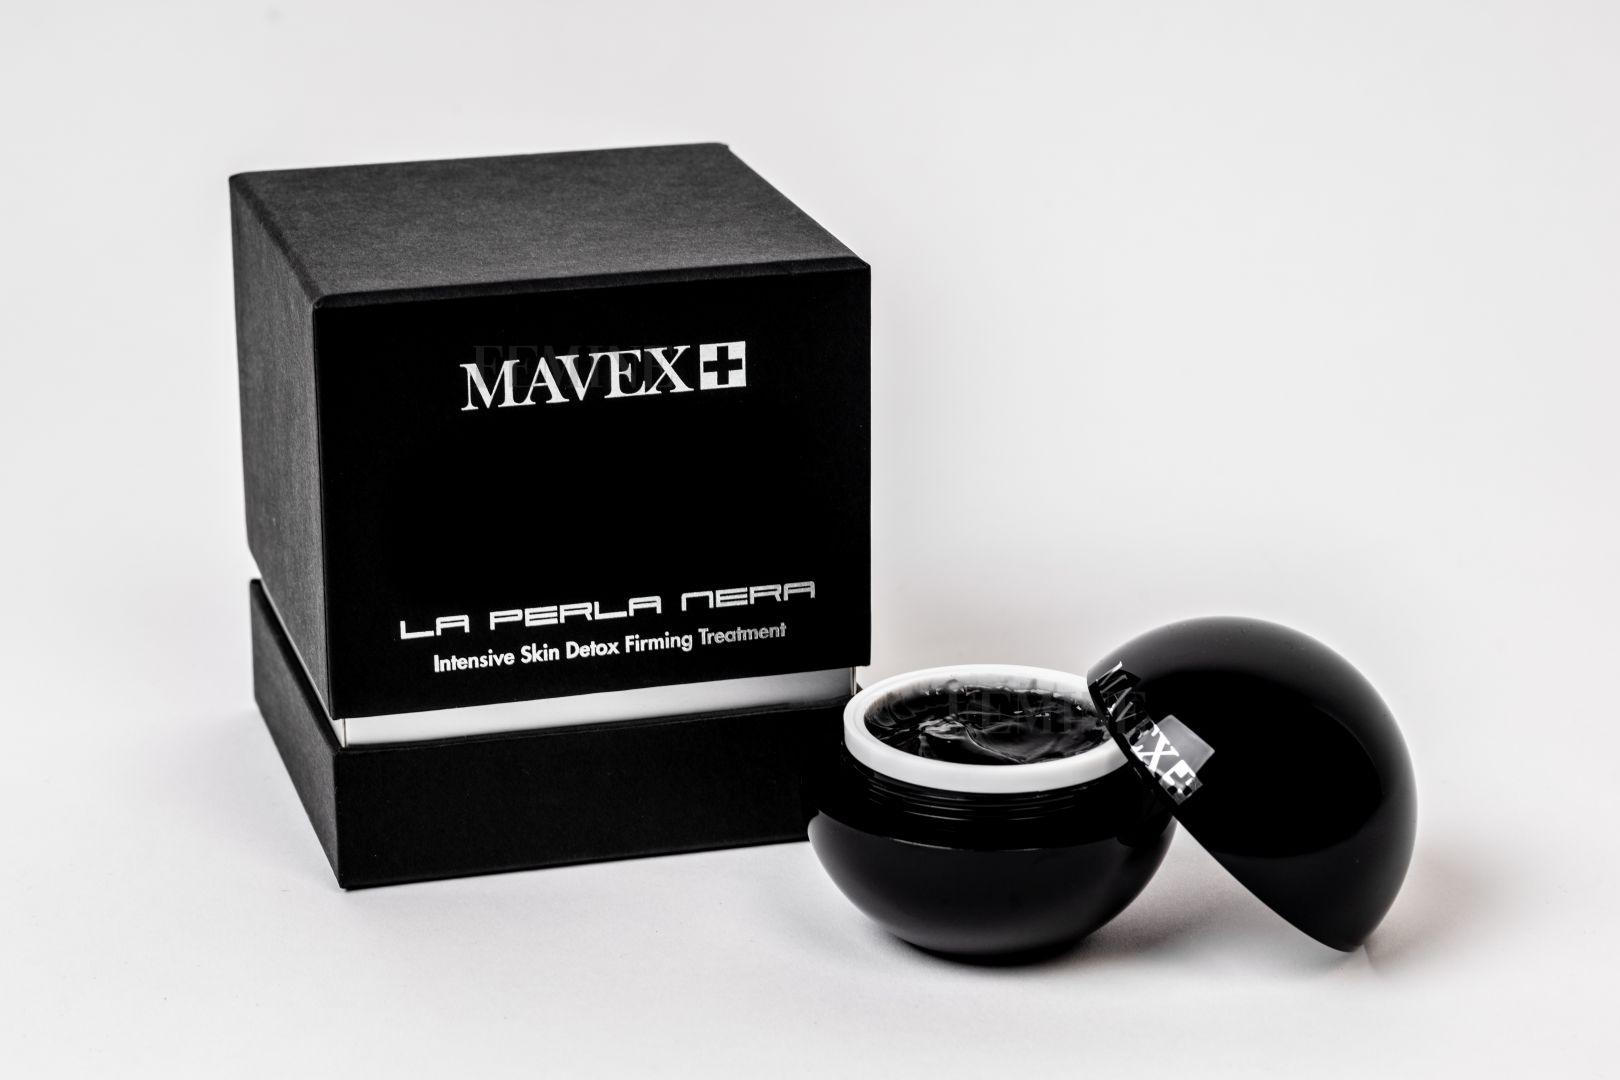 Mavex pleťový krém Intensive Skin Detox Firming Treatment 50ml